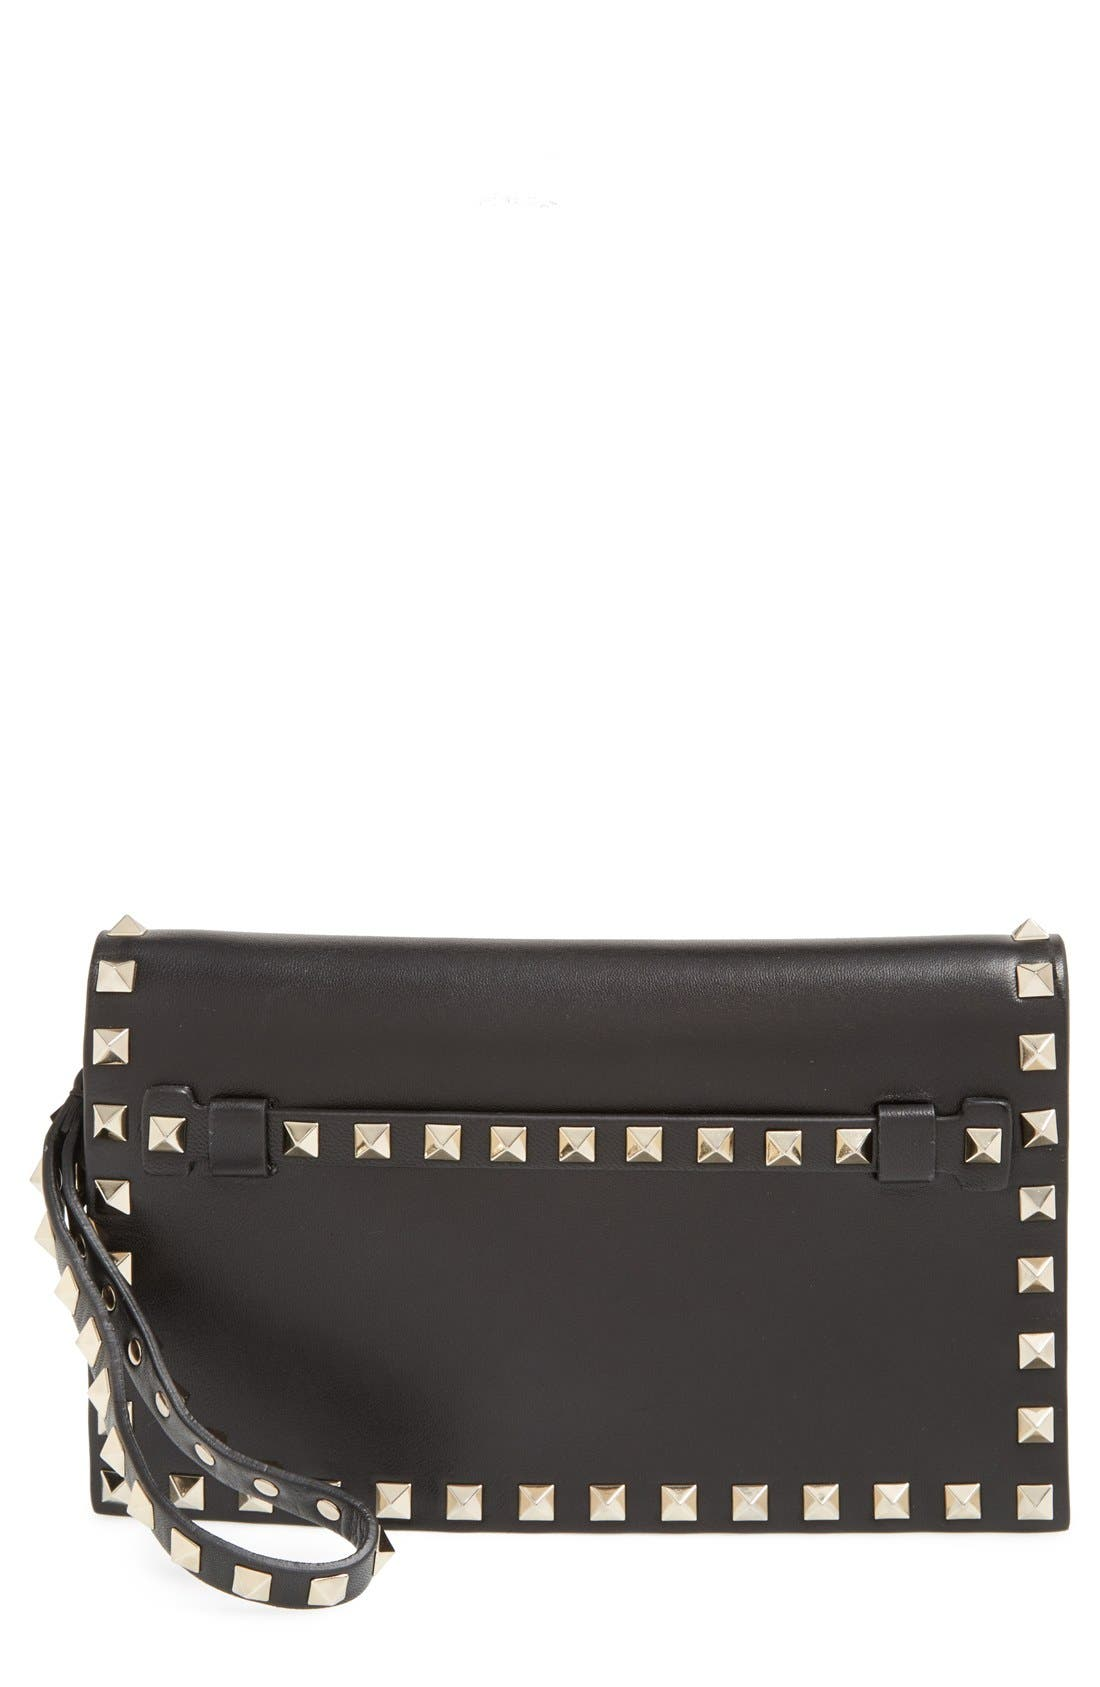 Main Image - Valentino 'Small Rockstud' Leather Flap Clutch